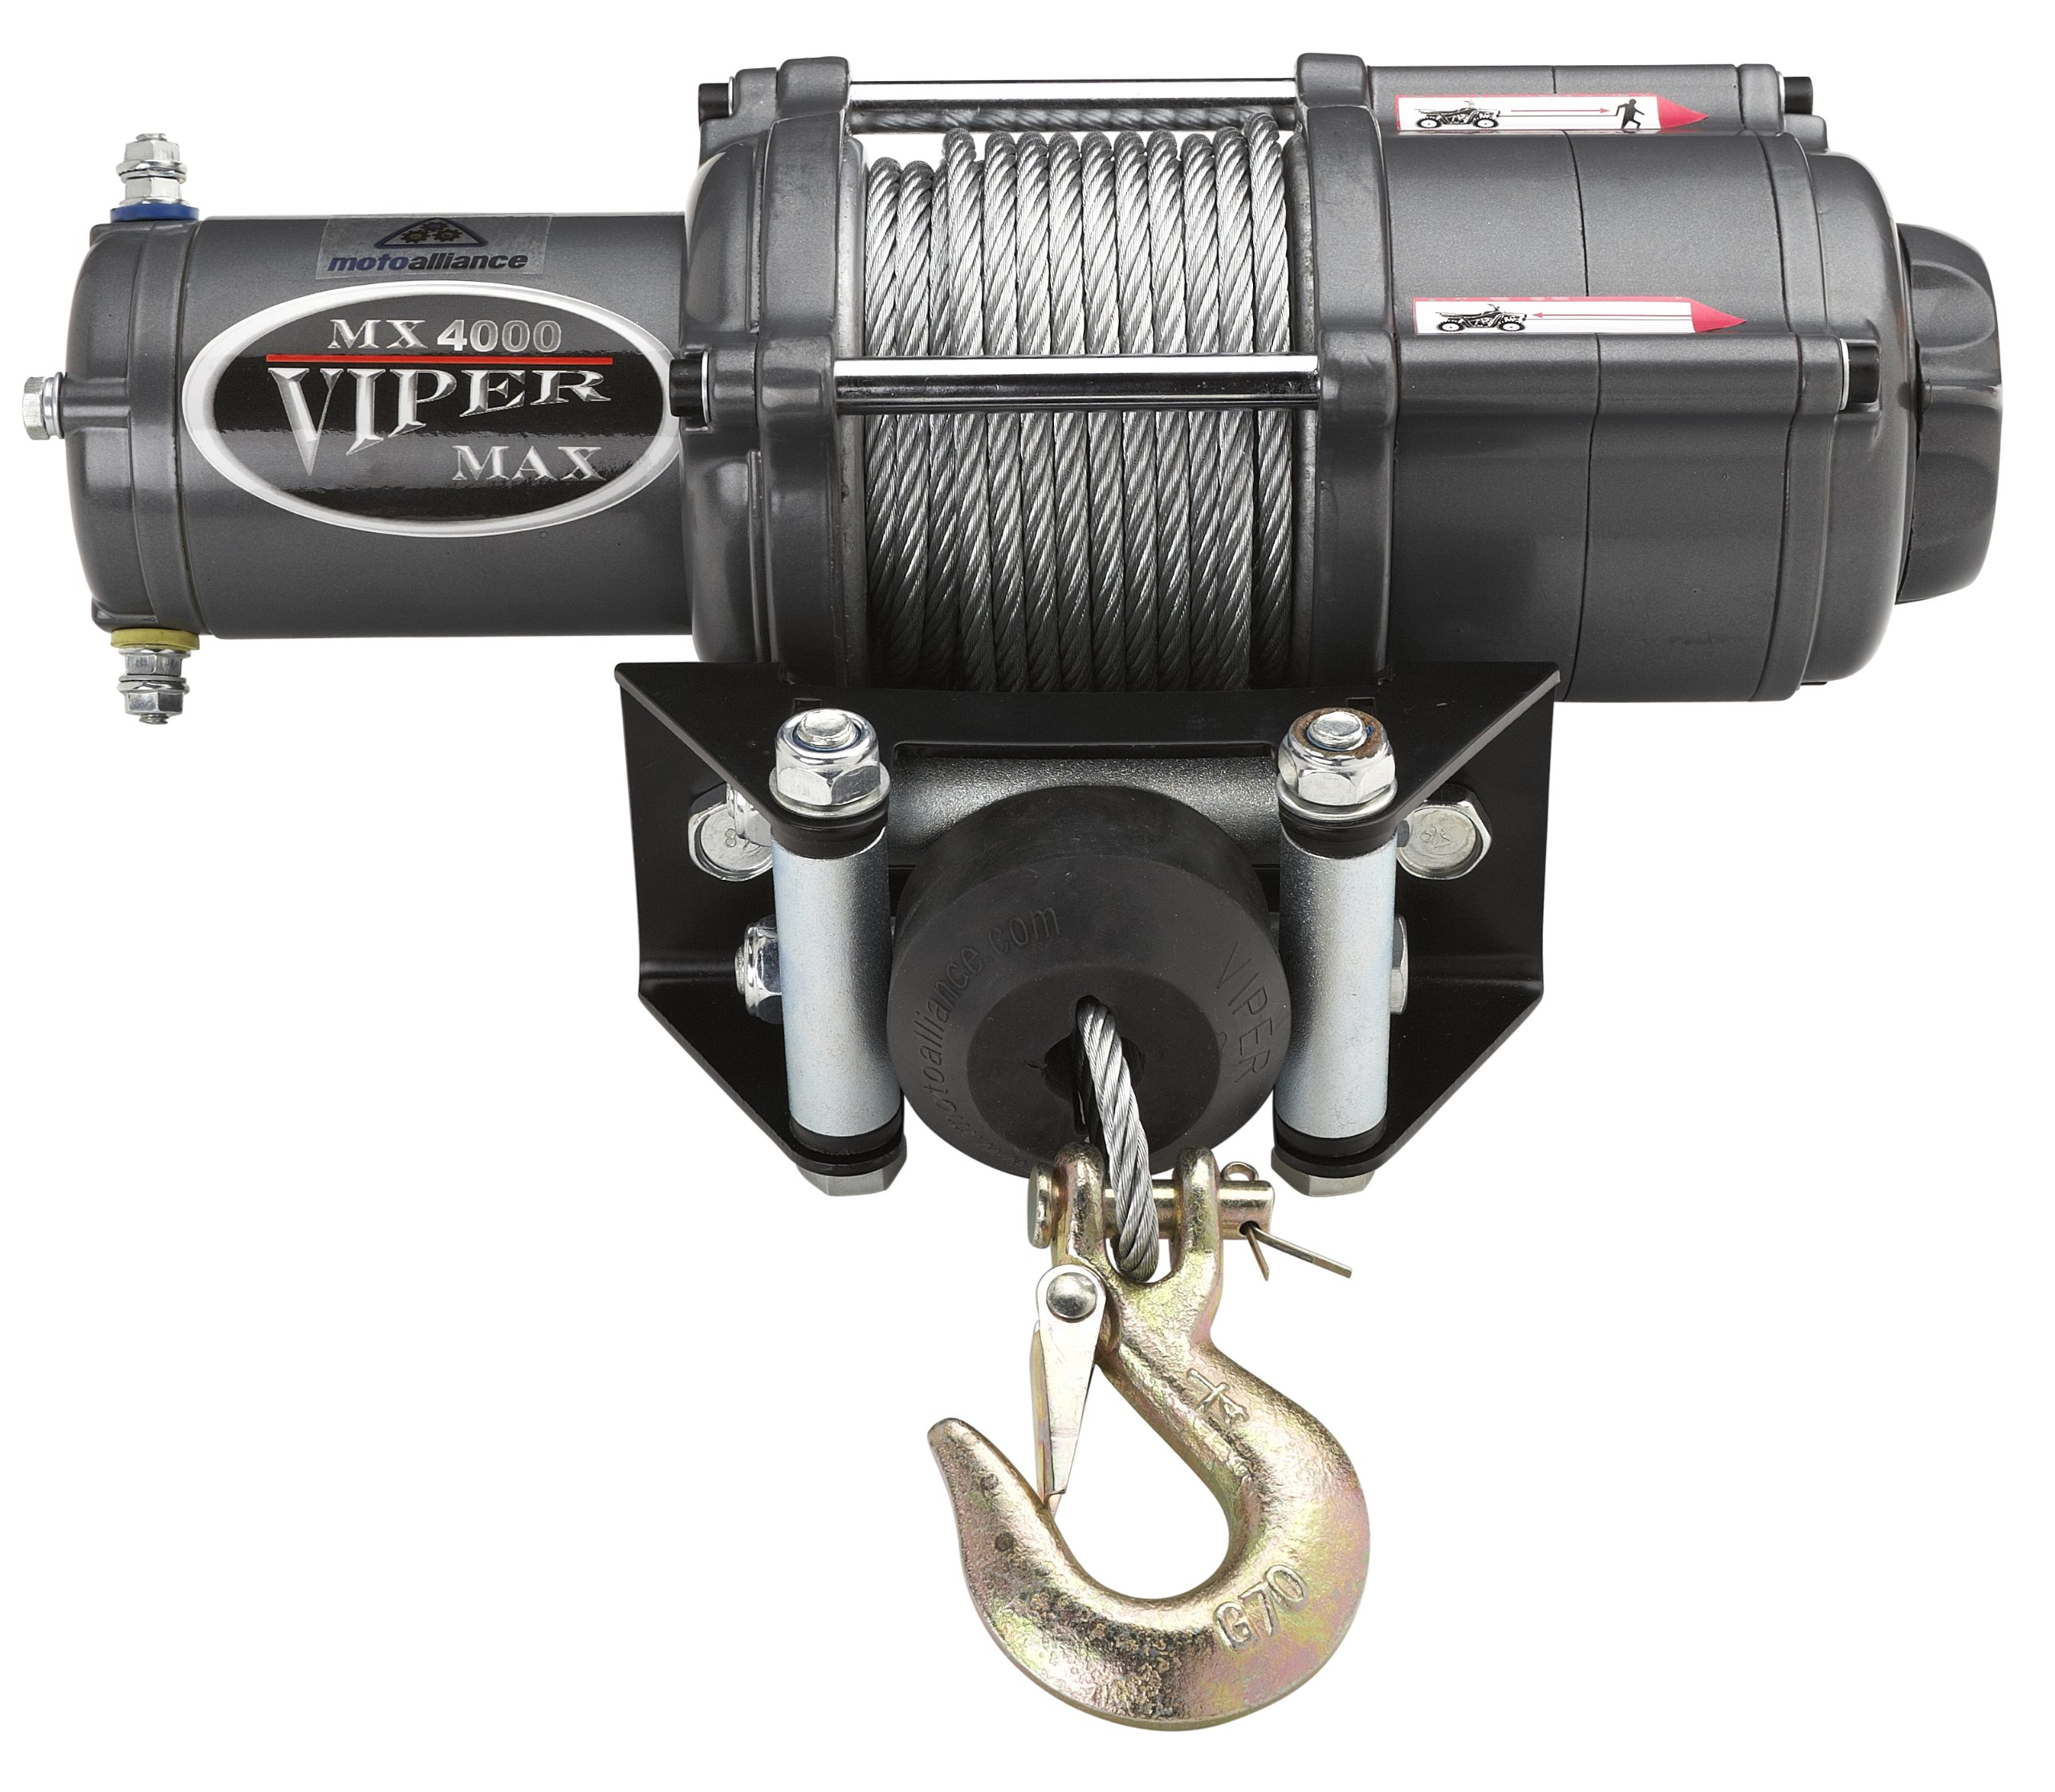 VIPER Max 4000lb ATV/UTV Winch Kit with 50 feet Steel Cable